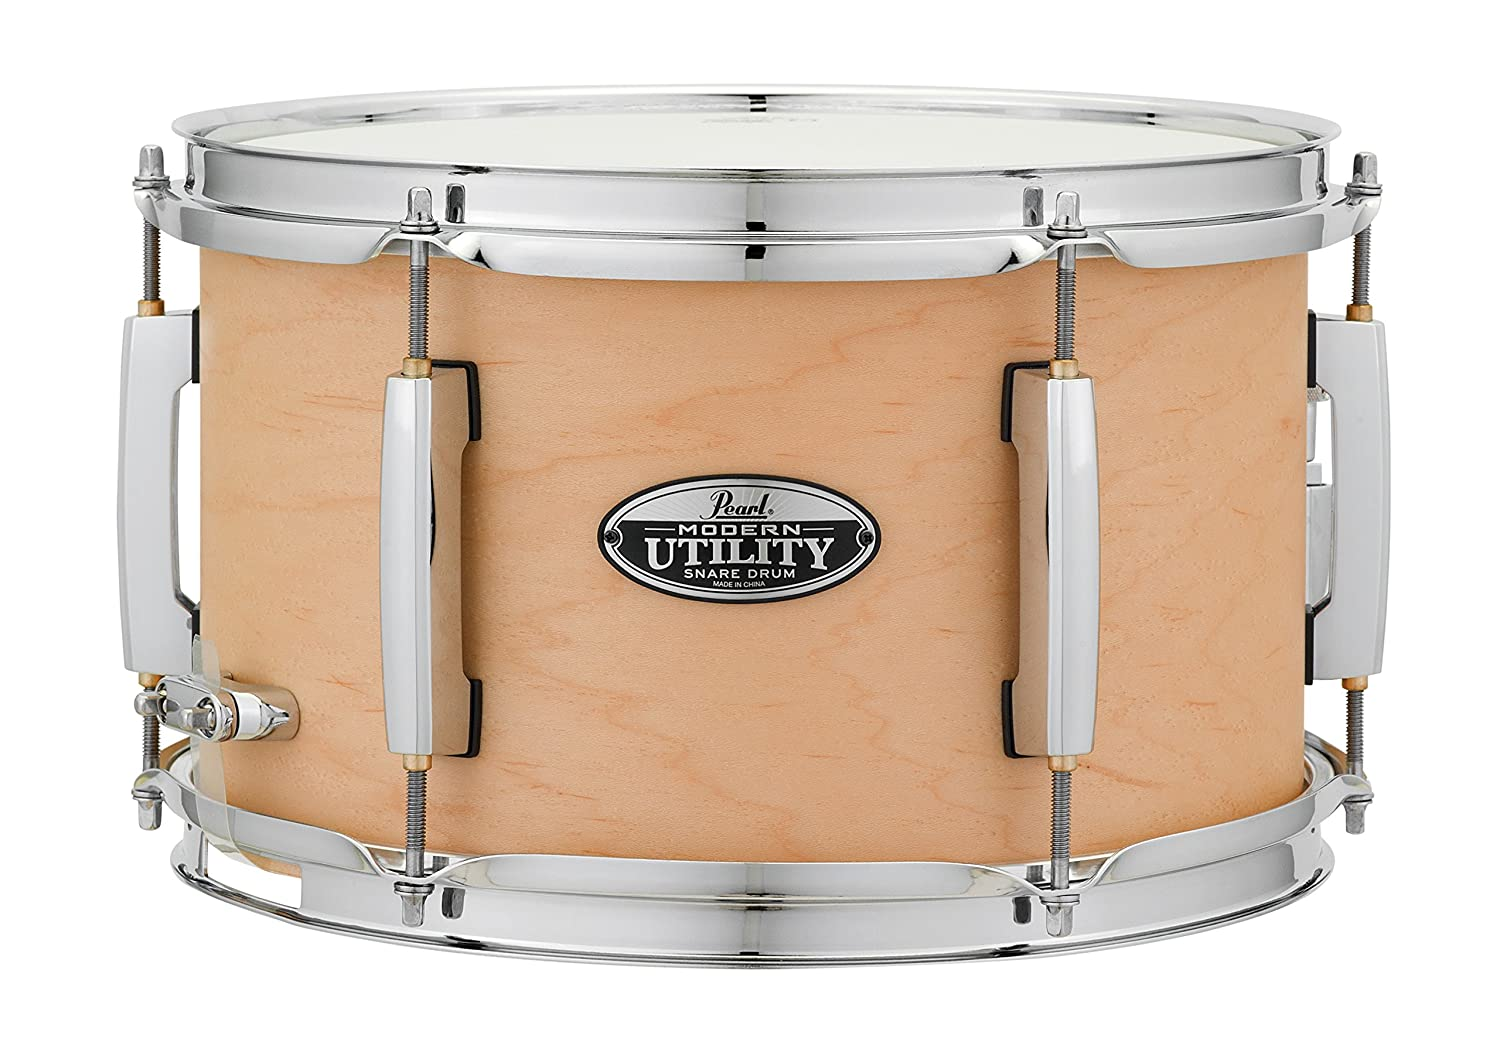 Pearl MUS1270M227 Modern Utility 12x7 Maple Snare Drum, Satin Black Pearl Corporation